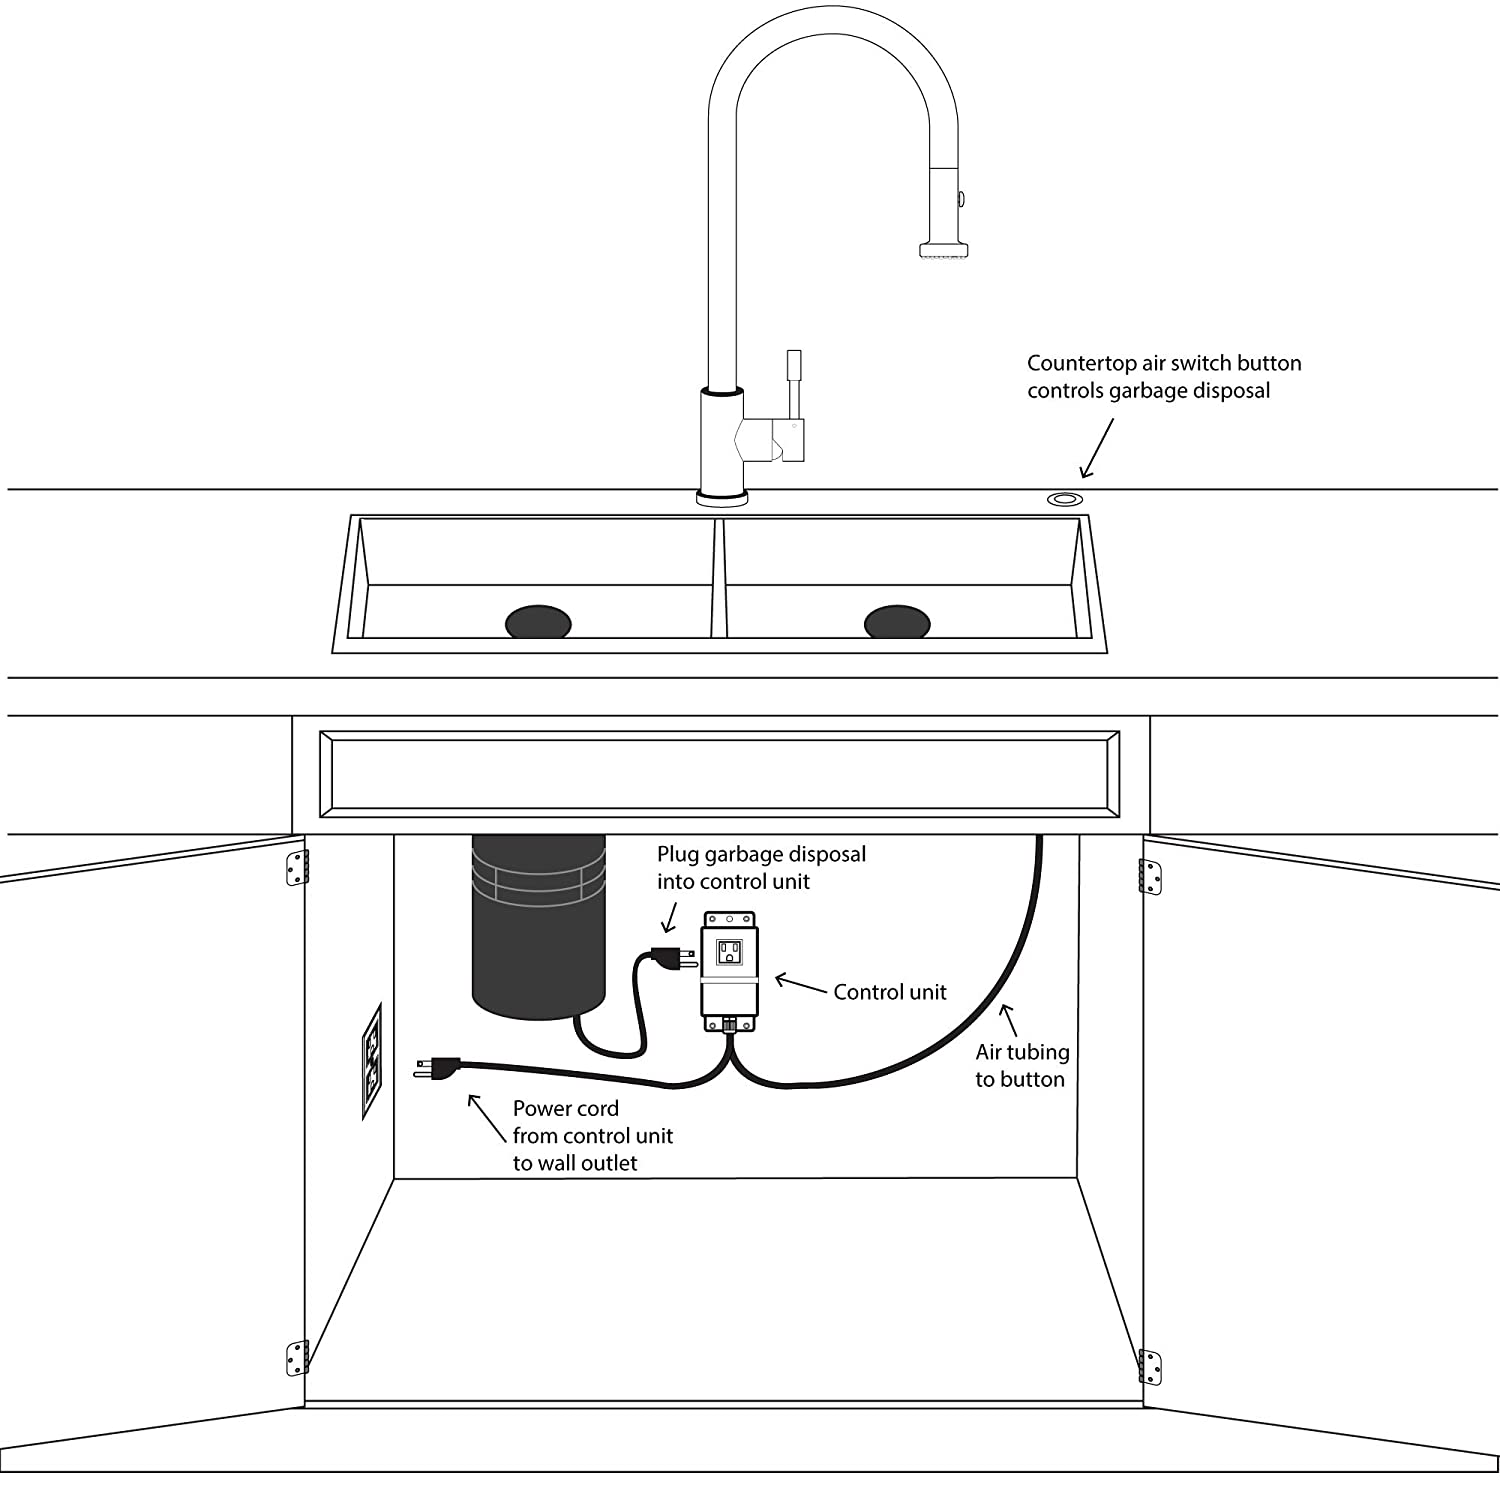 719zcQJhLlL._SL1500_ gts ga7 power 110 vac single outlet sink garbage disposal air badger garbage disposal wiring diagram at reclaimingppi.co